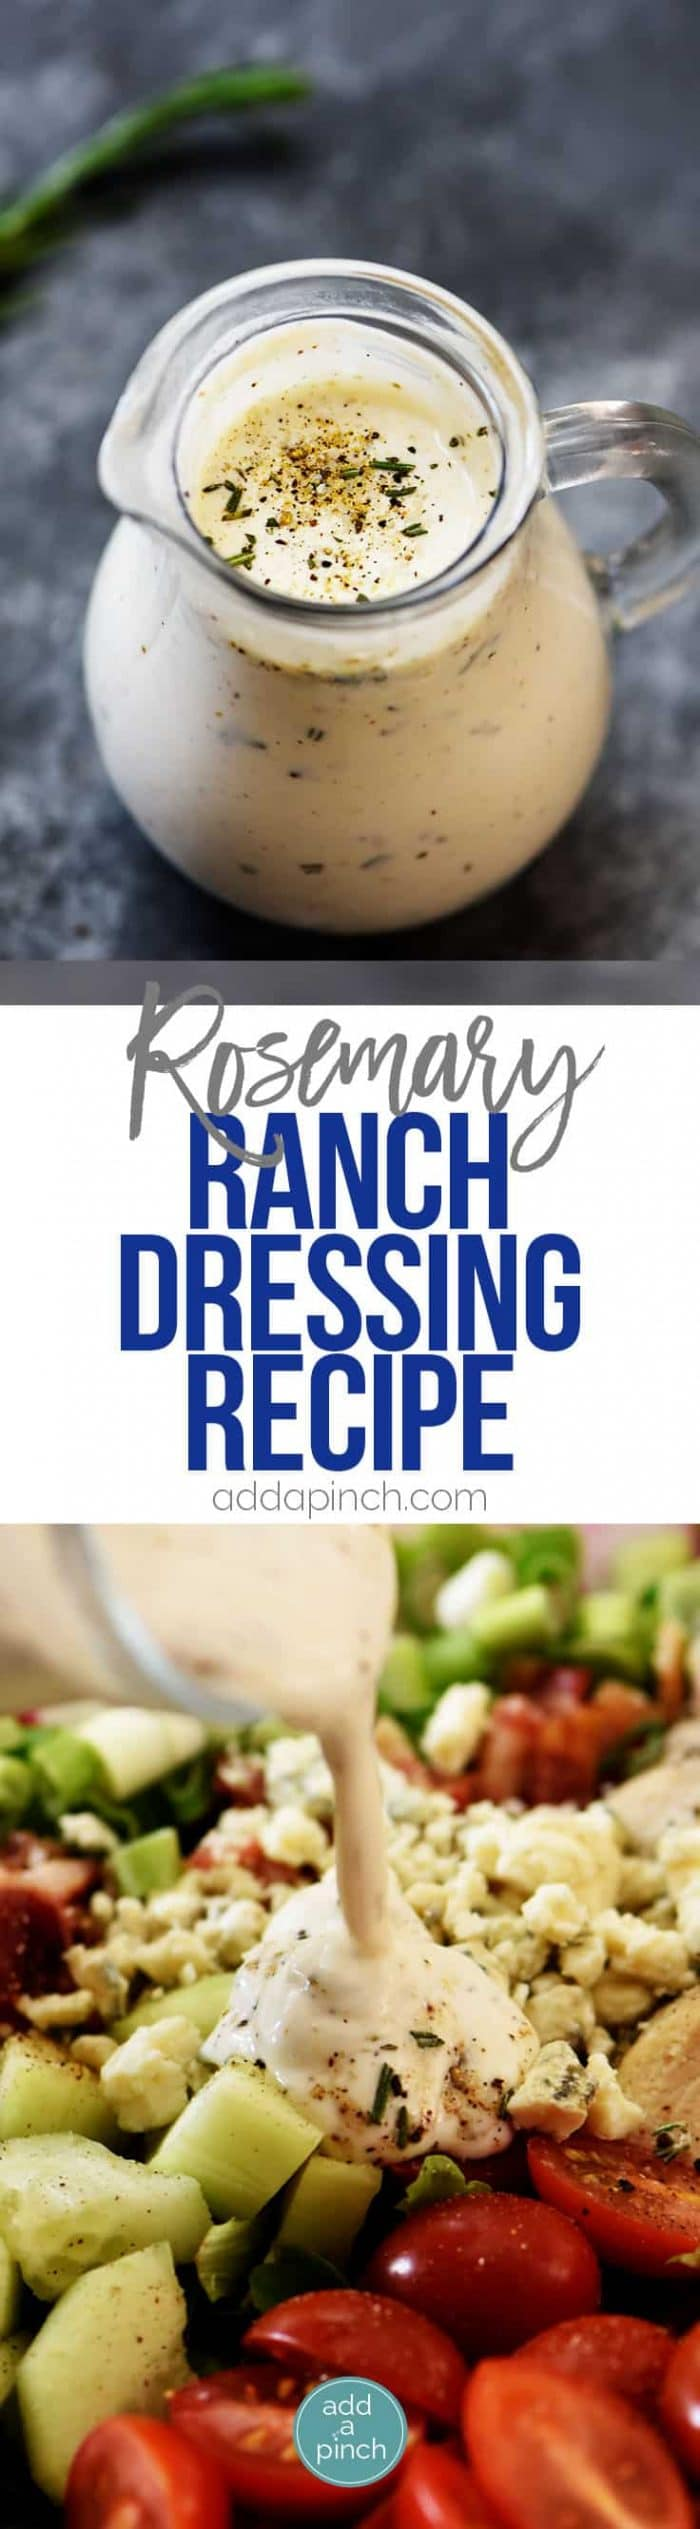 Rosemary Ranch Dressing Recipe - This simple ranch dressing is an update to the classic ranch dressing with fresh rosemary and spices and adds so much flavor to salads, chicken, and so many dishes! // addapinch.com